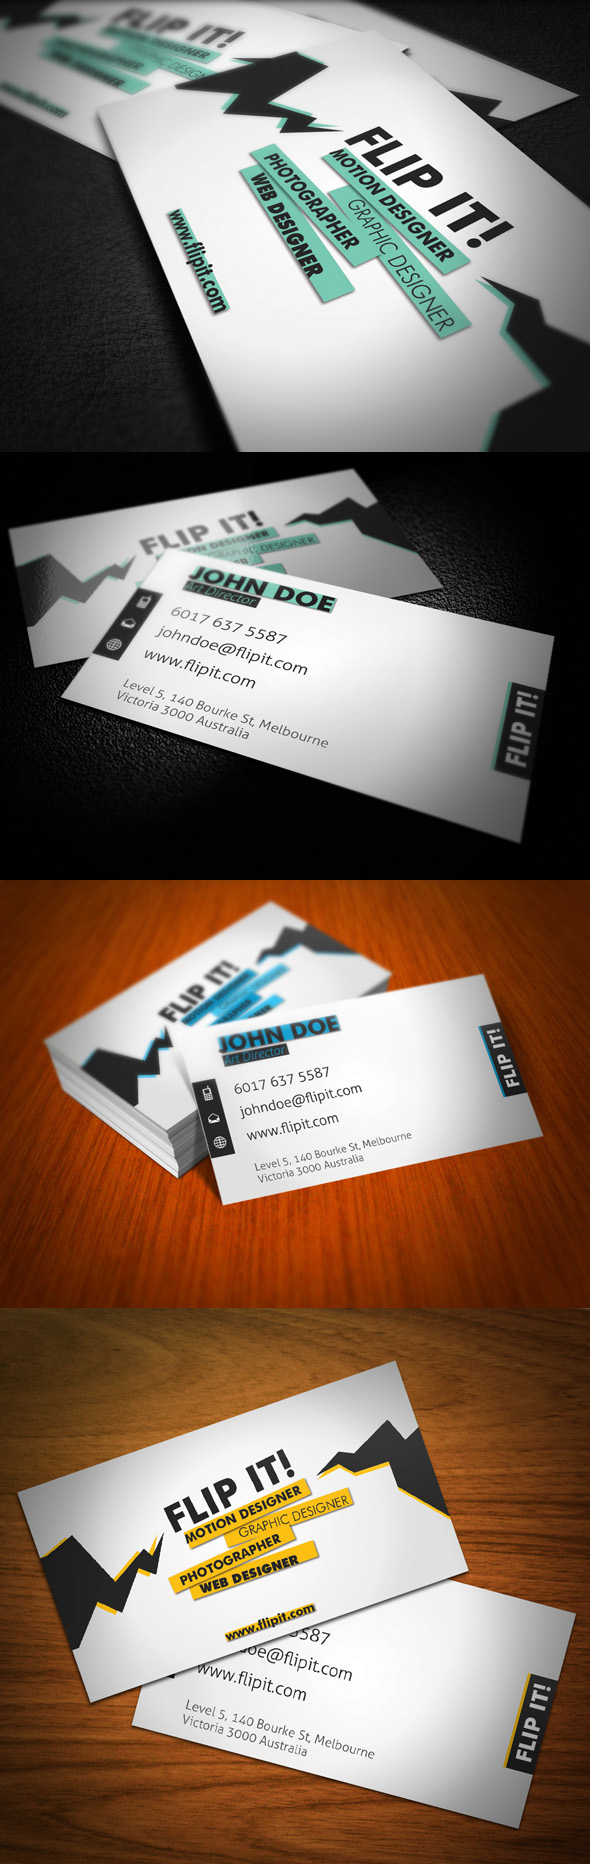 FLIPT IT Business Card by KaixerGroup